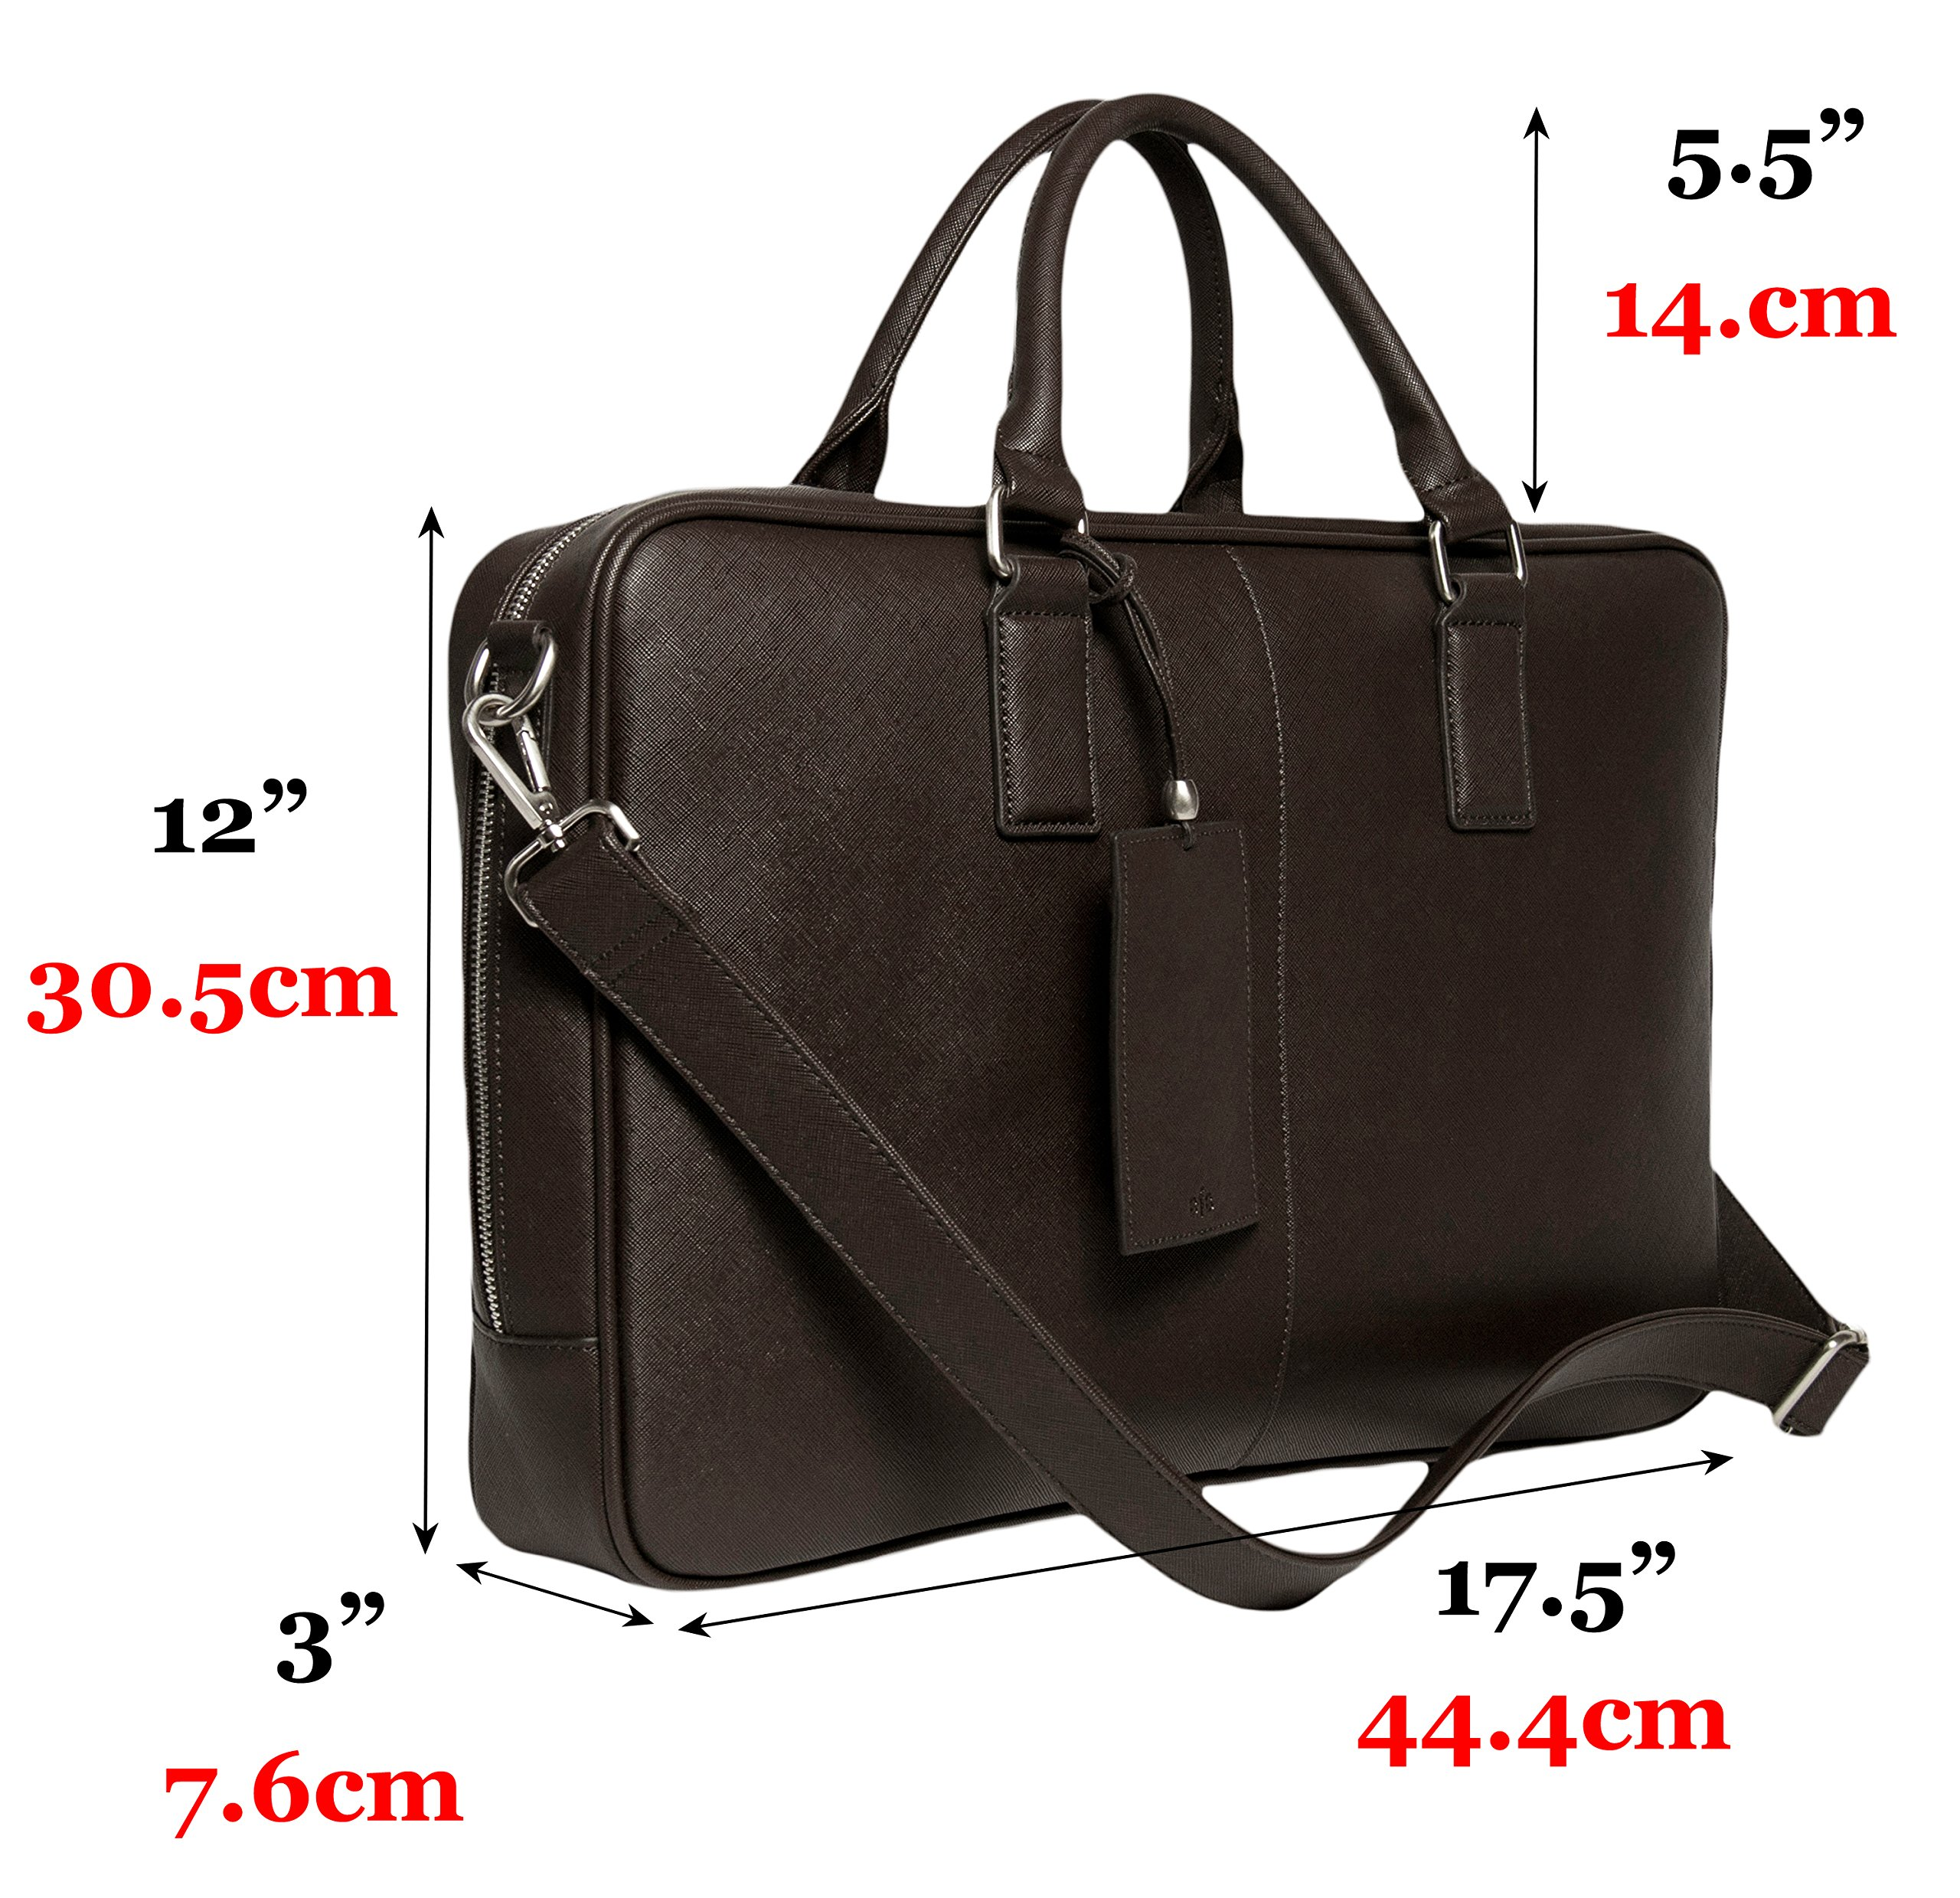 BfB Laptop Messenger Bag For Men - Designer Business Computer Bag Or Attorney Briefcase - Ideal Commuter Bag For Work And Travel - CHOCOLATE BROWN by My Best Friend is a Bag (Image #8)